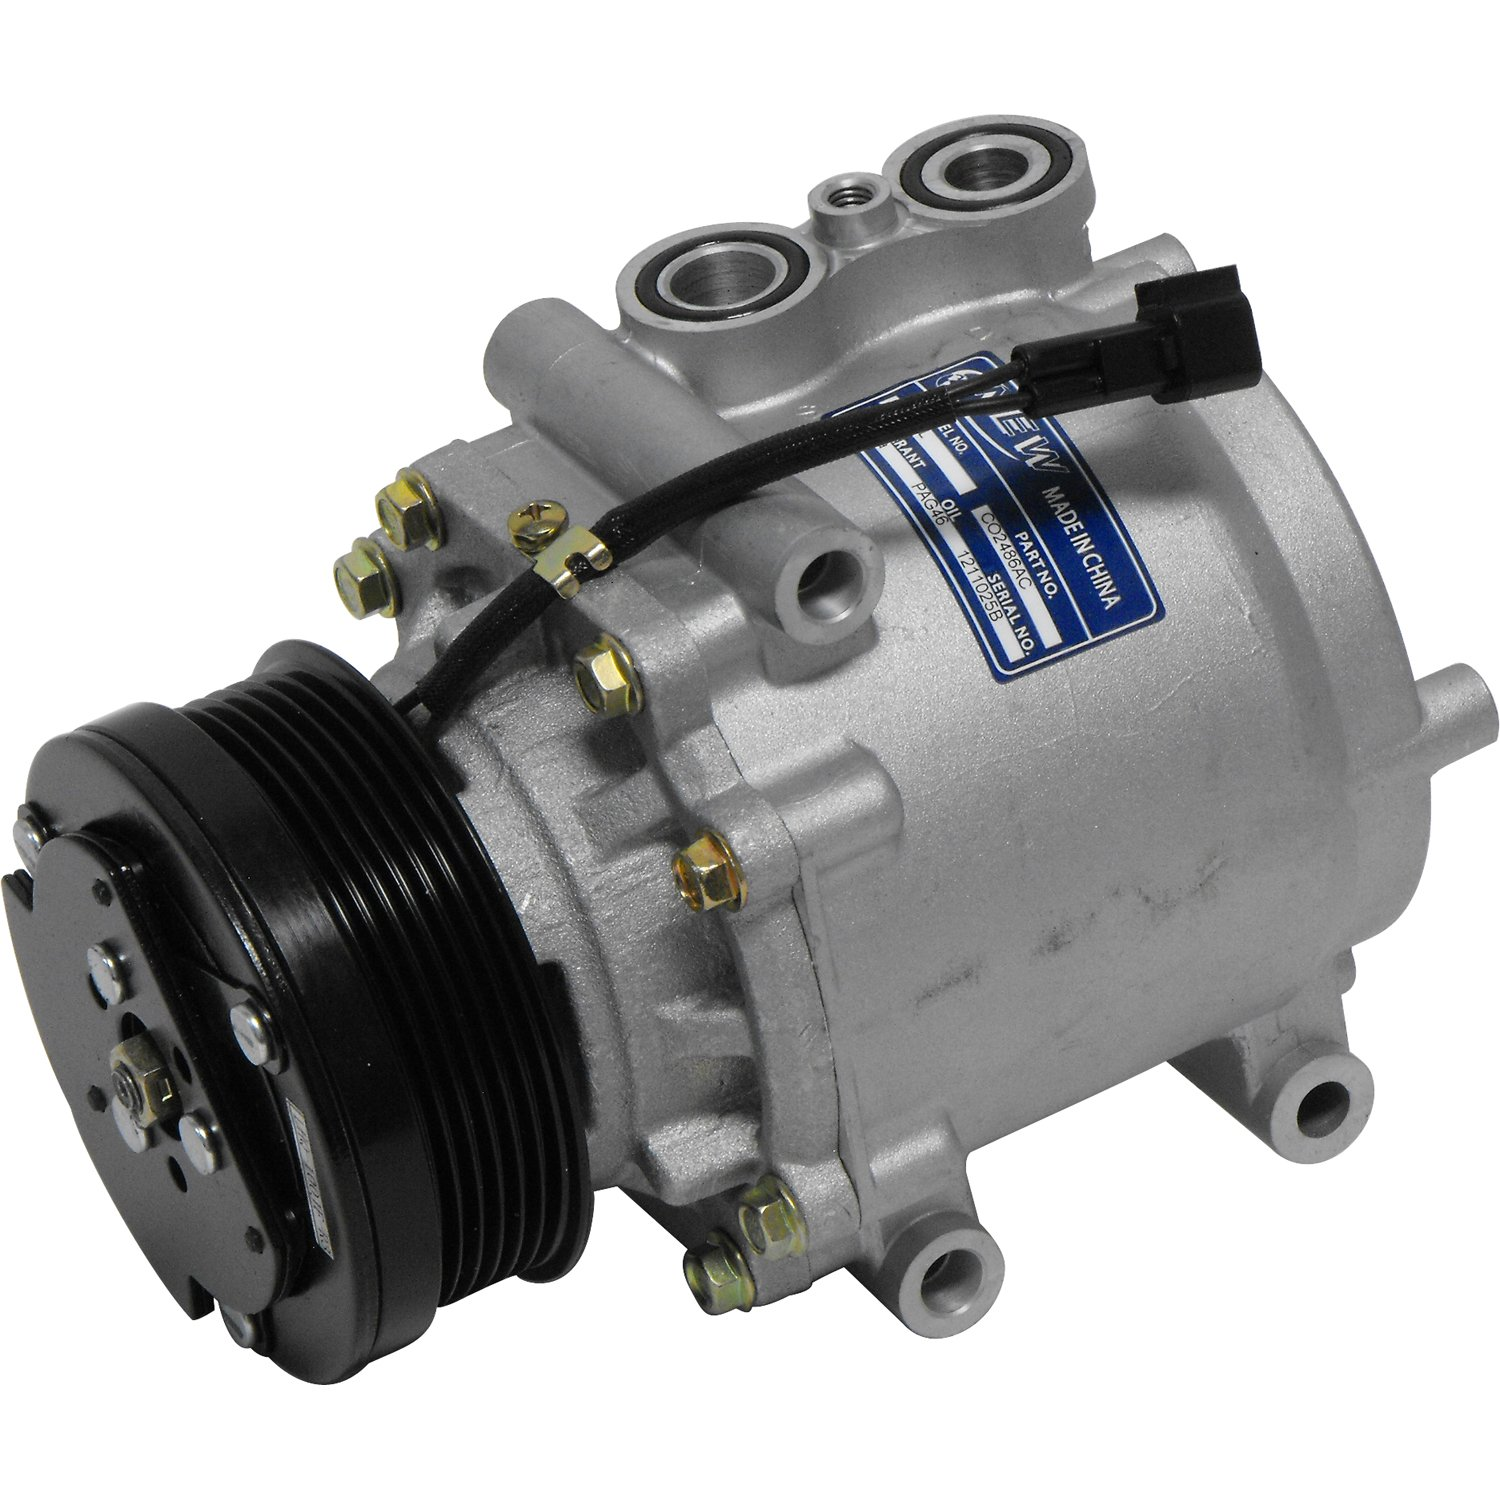 71dmZ9I1LwL._SL1500_ amazon com compressors & parts air conditioning automotive  at bayanpartner.co